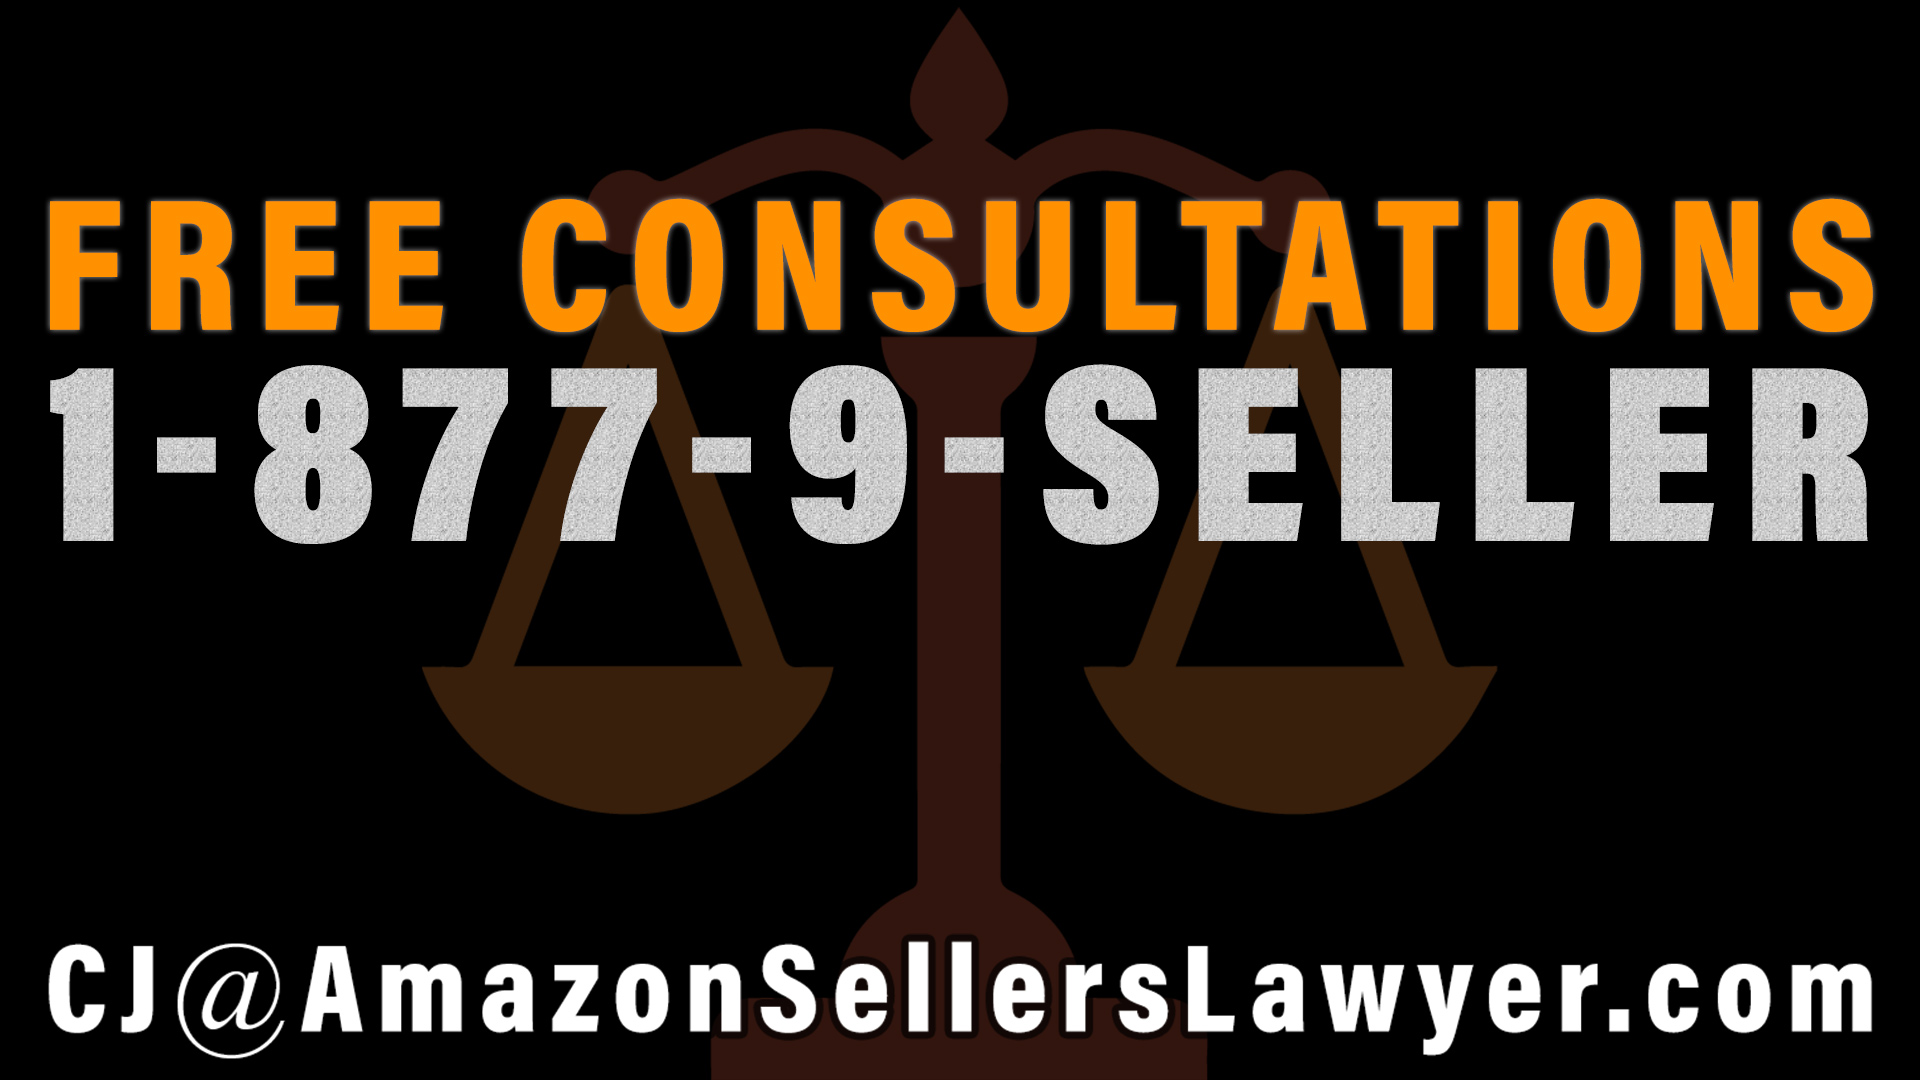 Free Consultations for Sellers 1-877-9-SELLER